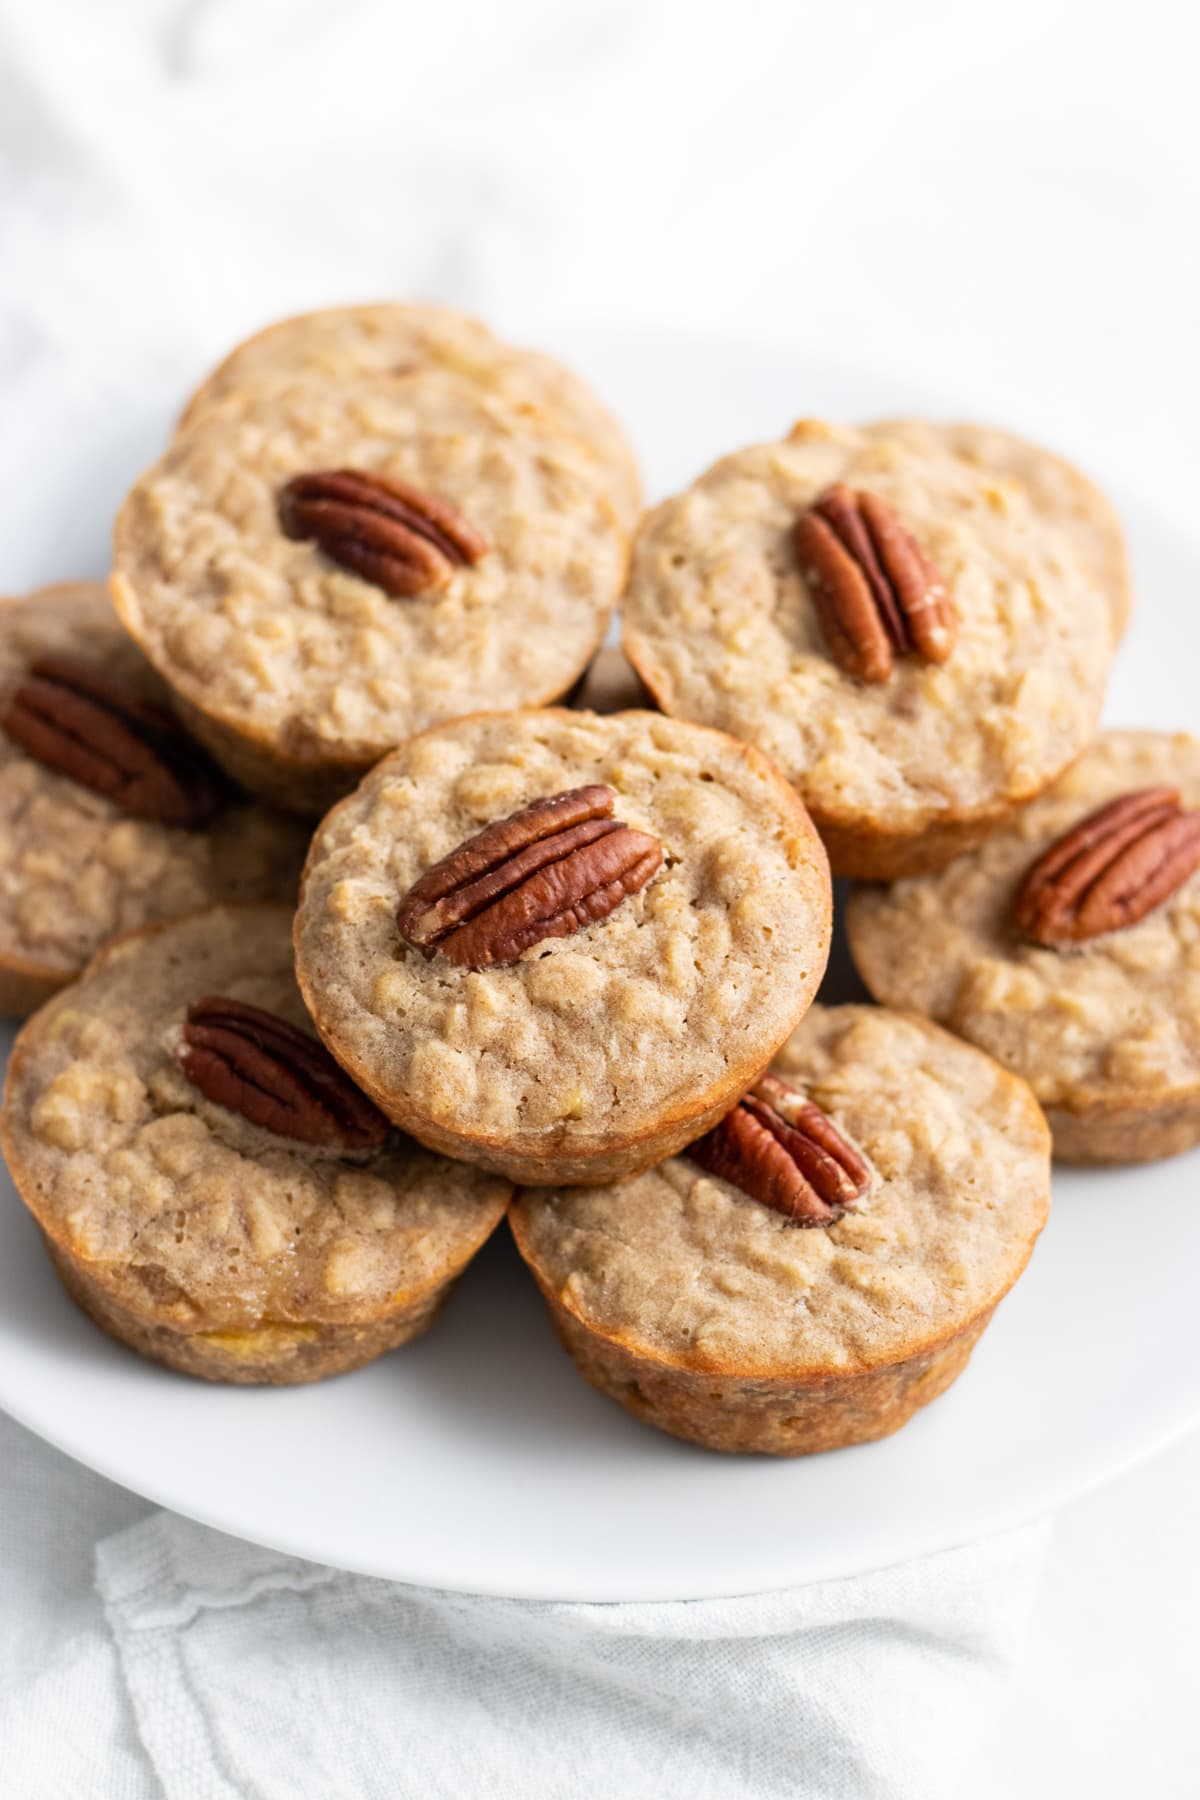 A plate of stacked baked oatmeal cups. Each oatmeal cup is topped with a pecan halve.